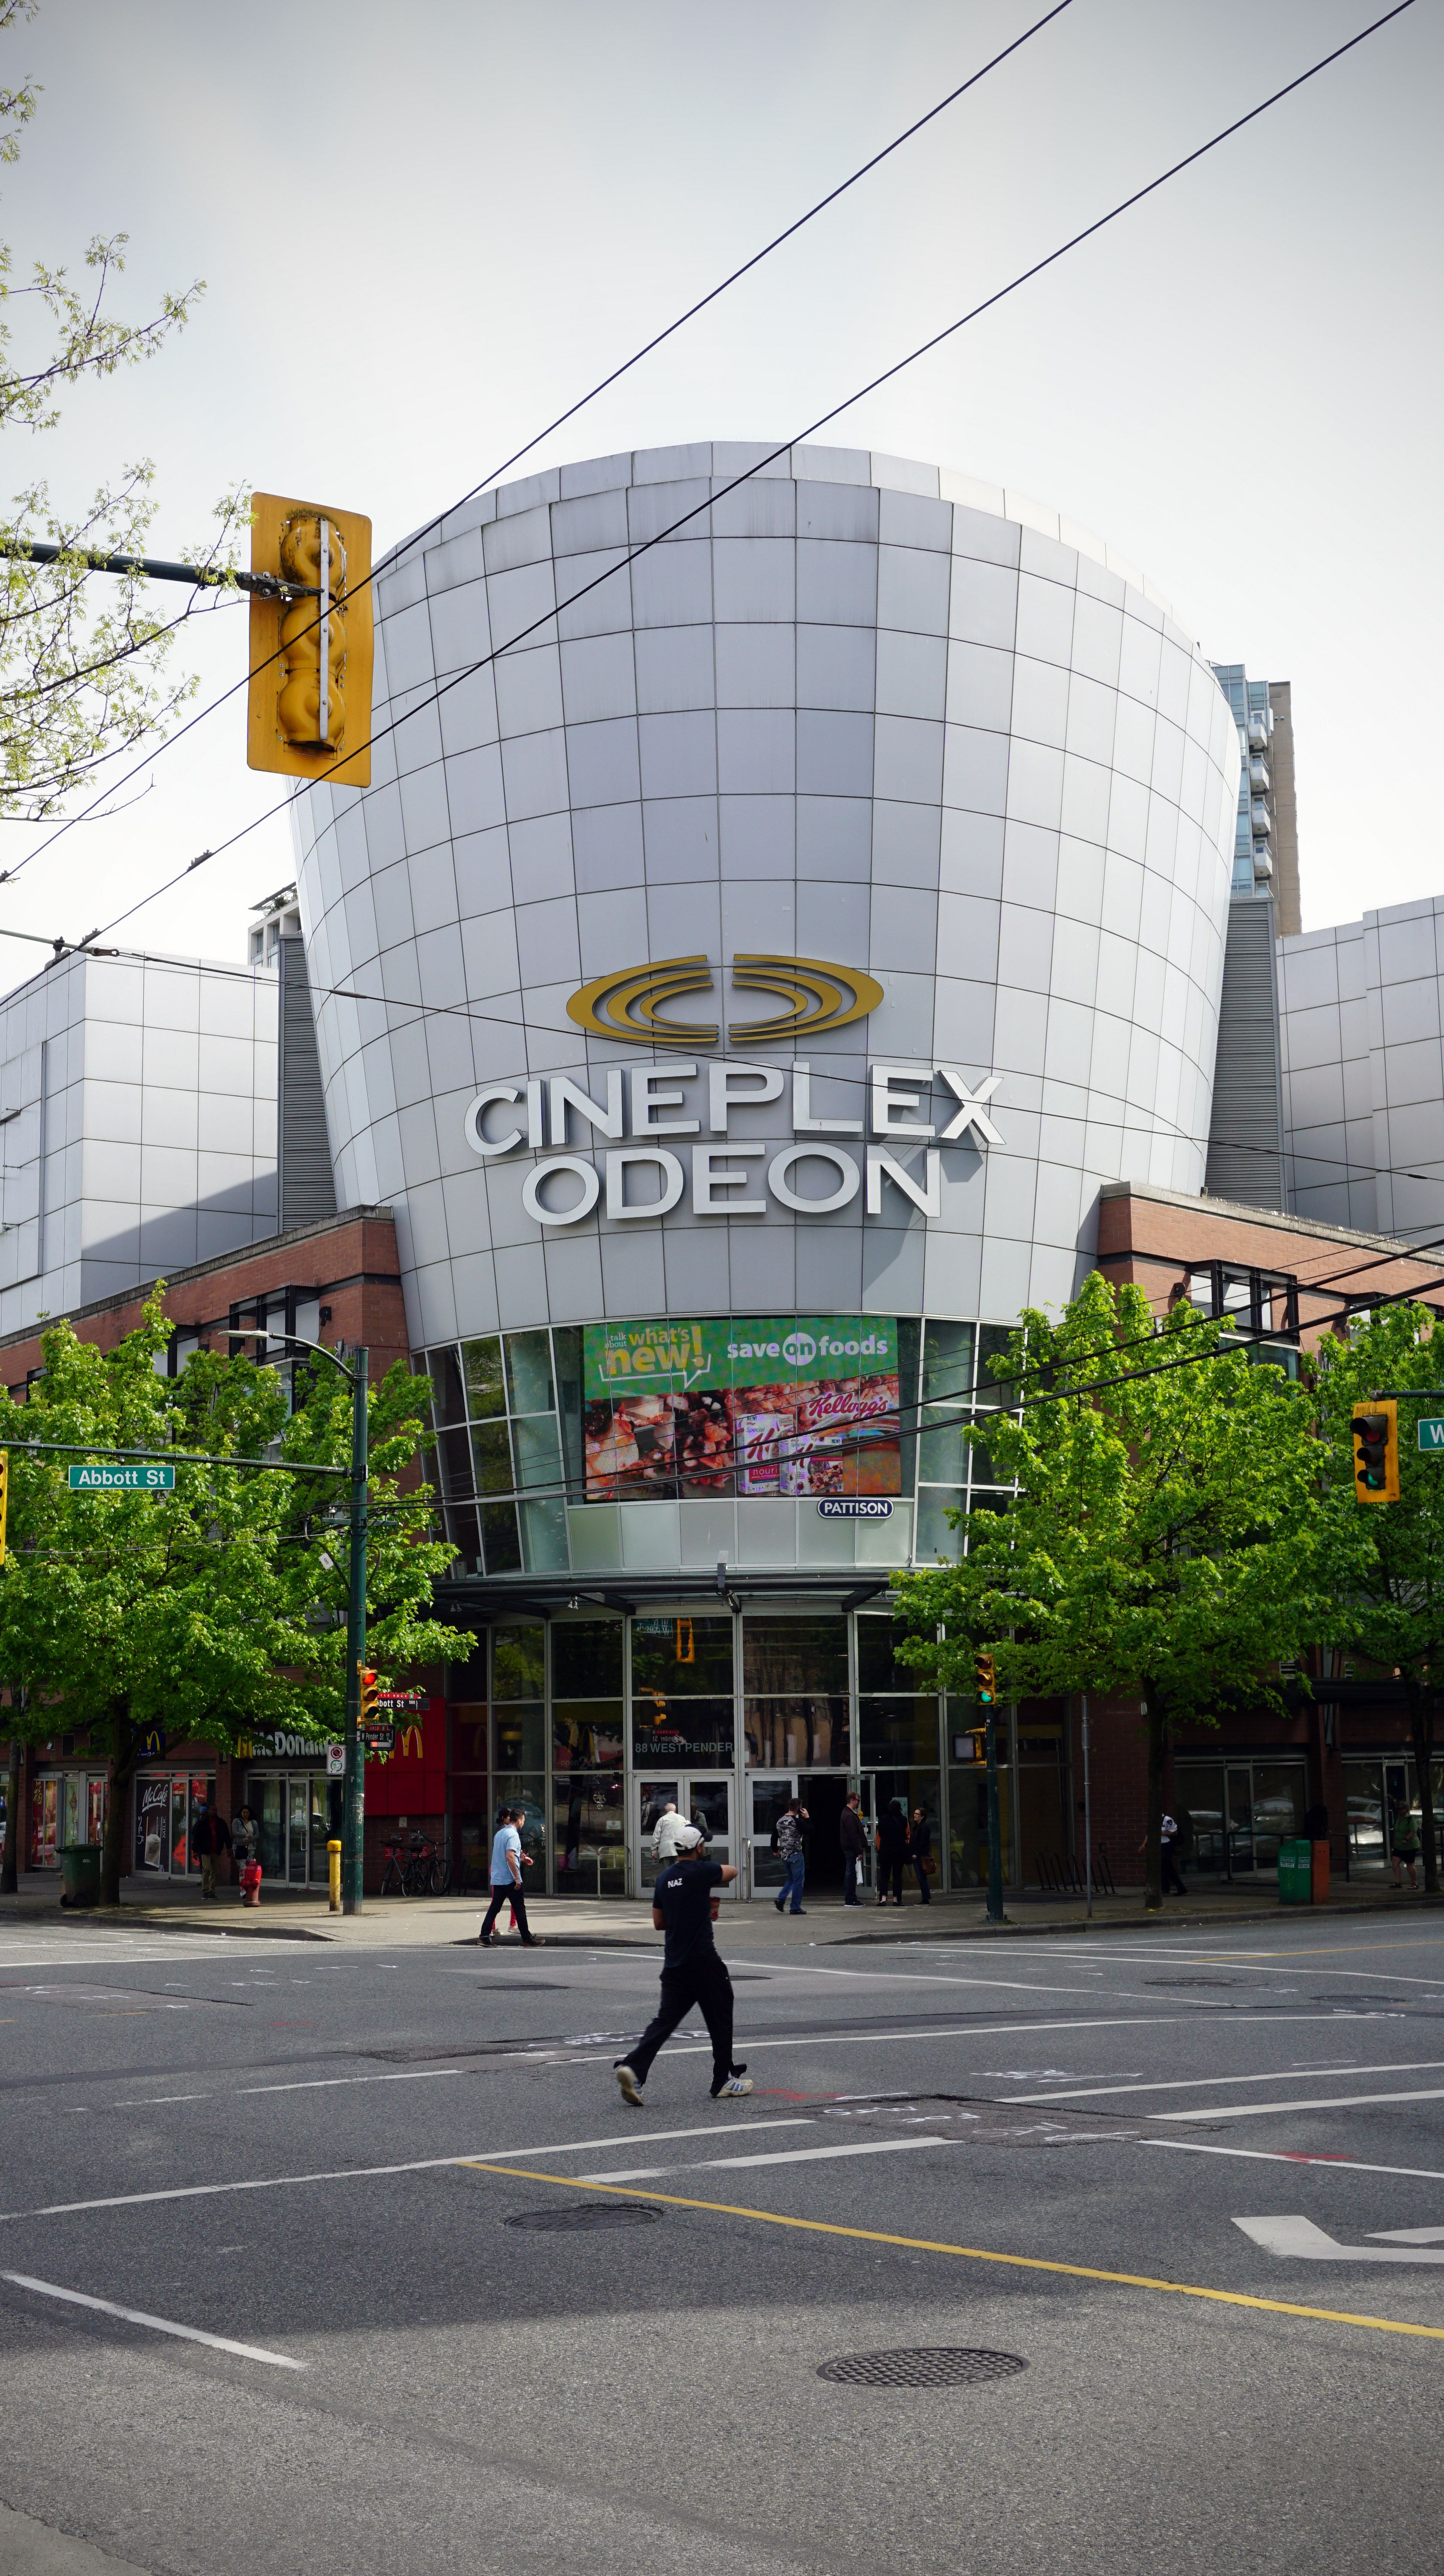 Cineplex Odeon International Village Cinemas First Opened On May 25th 1999 Going By The Name Of Tinseltown 12 And O With Images Downtown Vancouver Romantic City Free Park